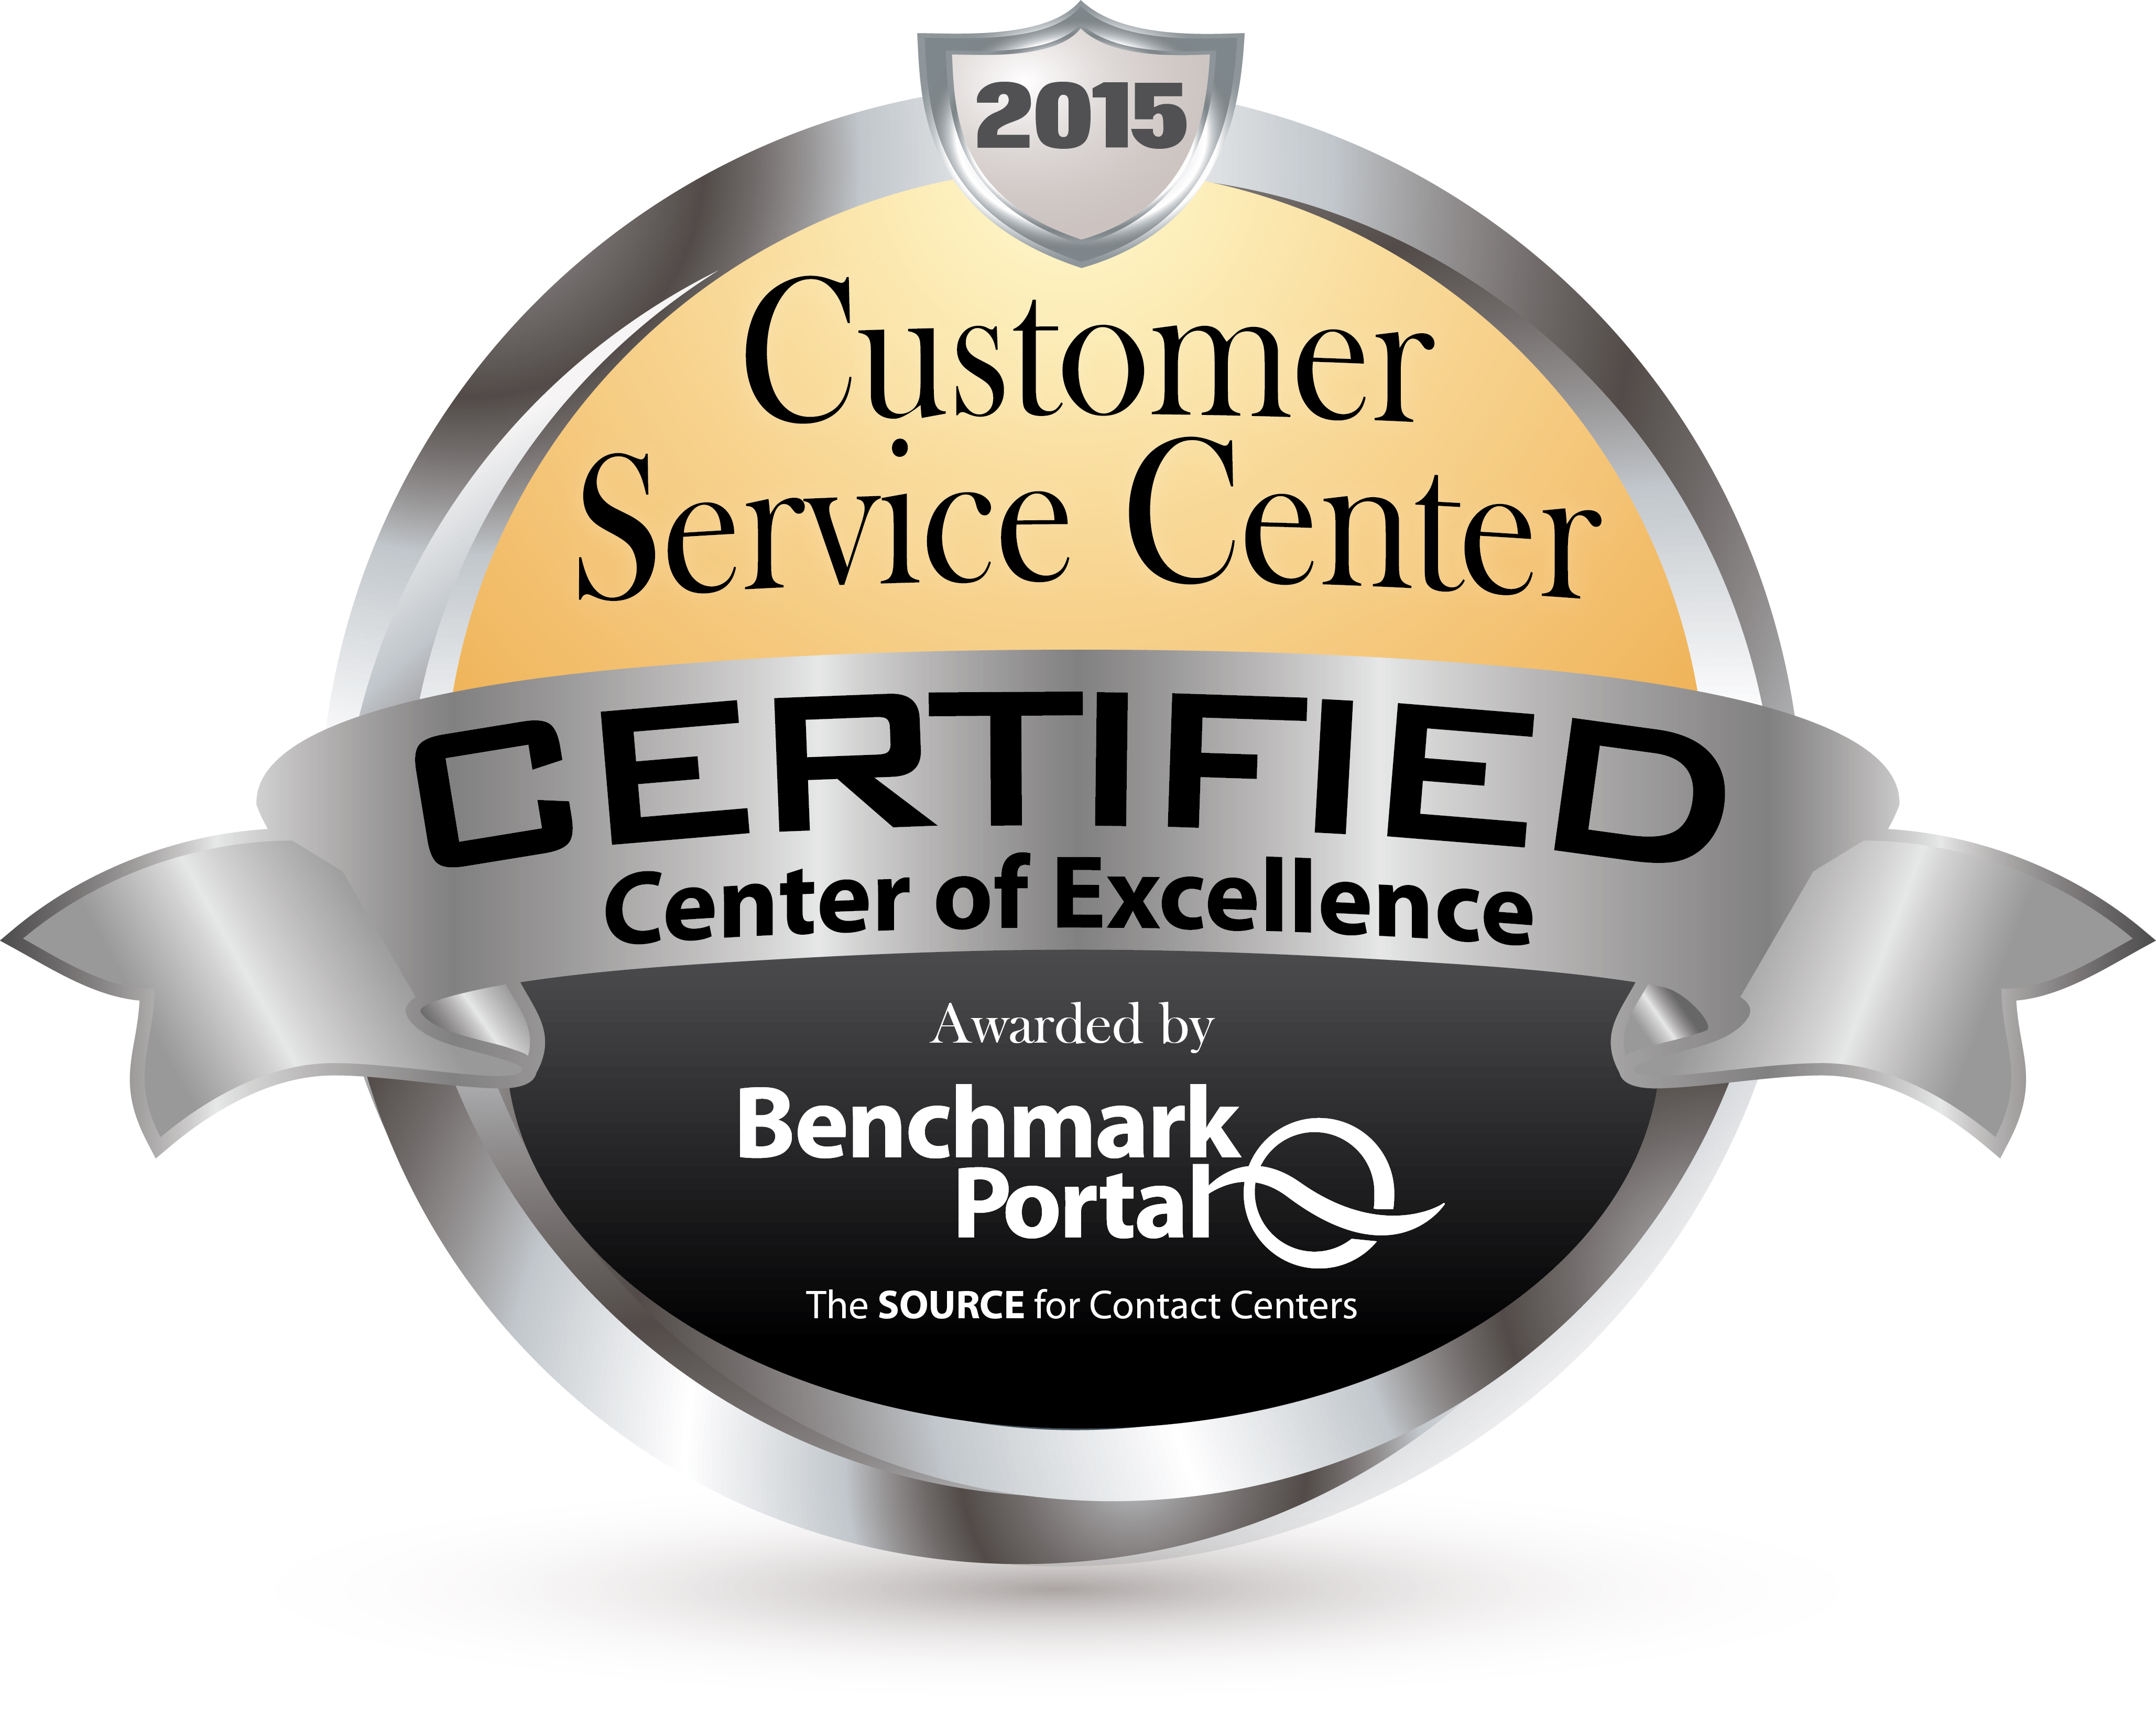 synchrony financial re certified as 2015 customer service center of excellence by. Black Bedroom Furniture Sets. Home Design Ideas